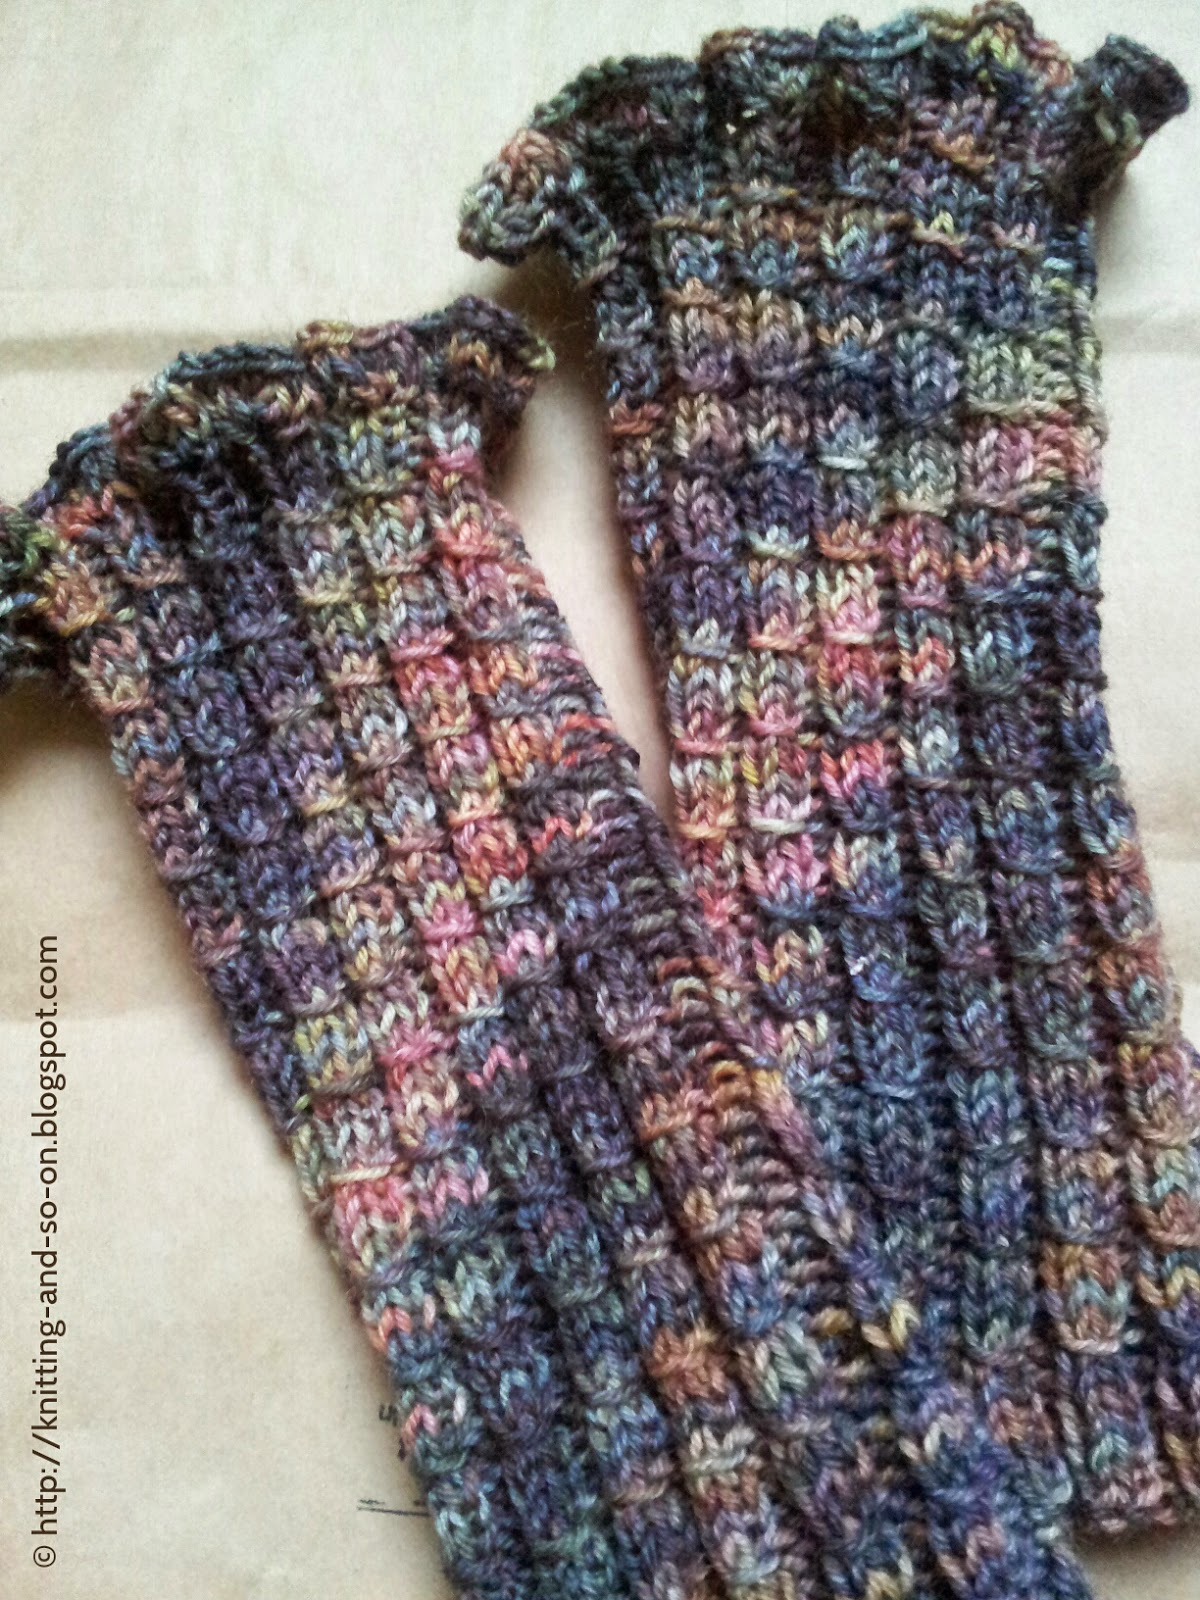 Wrist Warmers Knitting Pattern : Knitting and so on: Bamboo & Ruffles Wrist Warmers